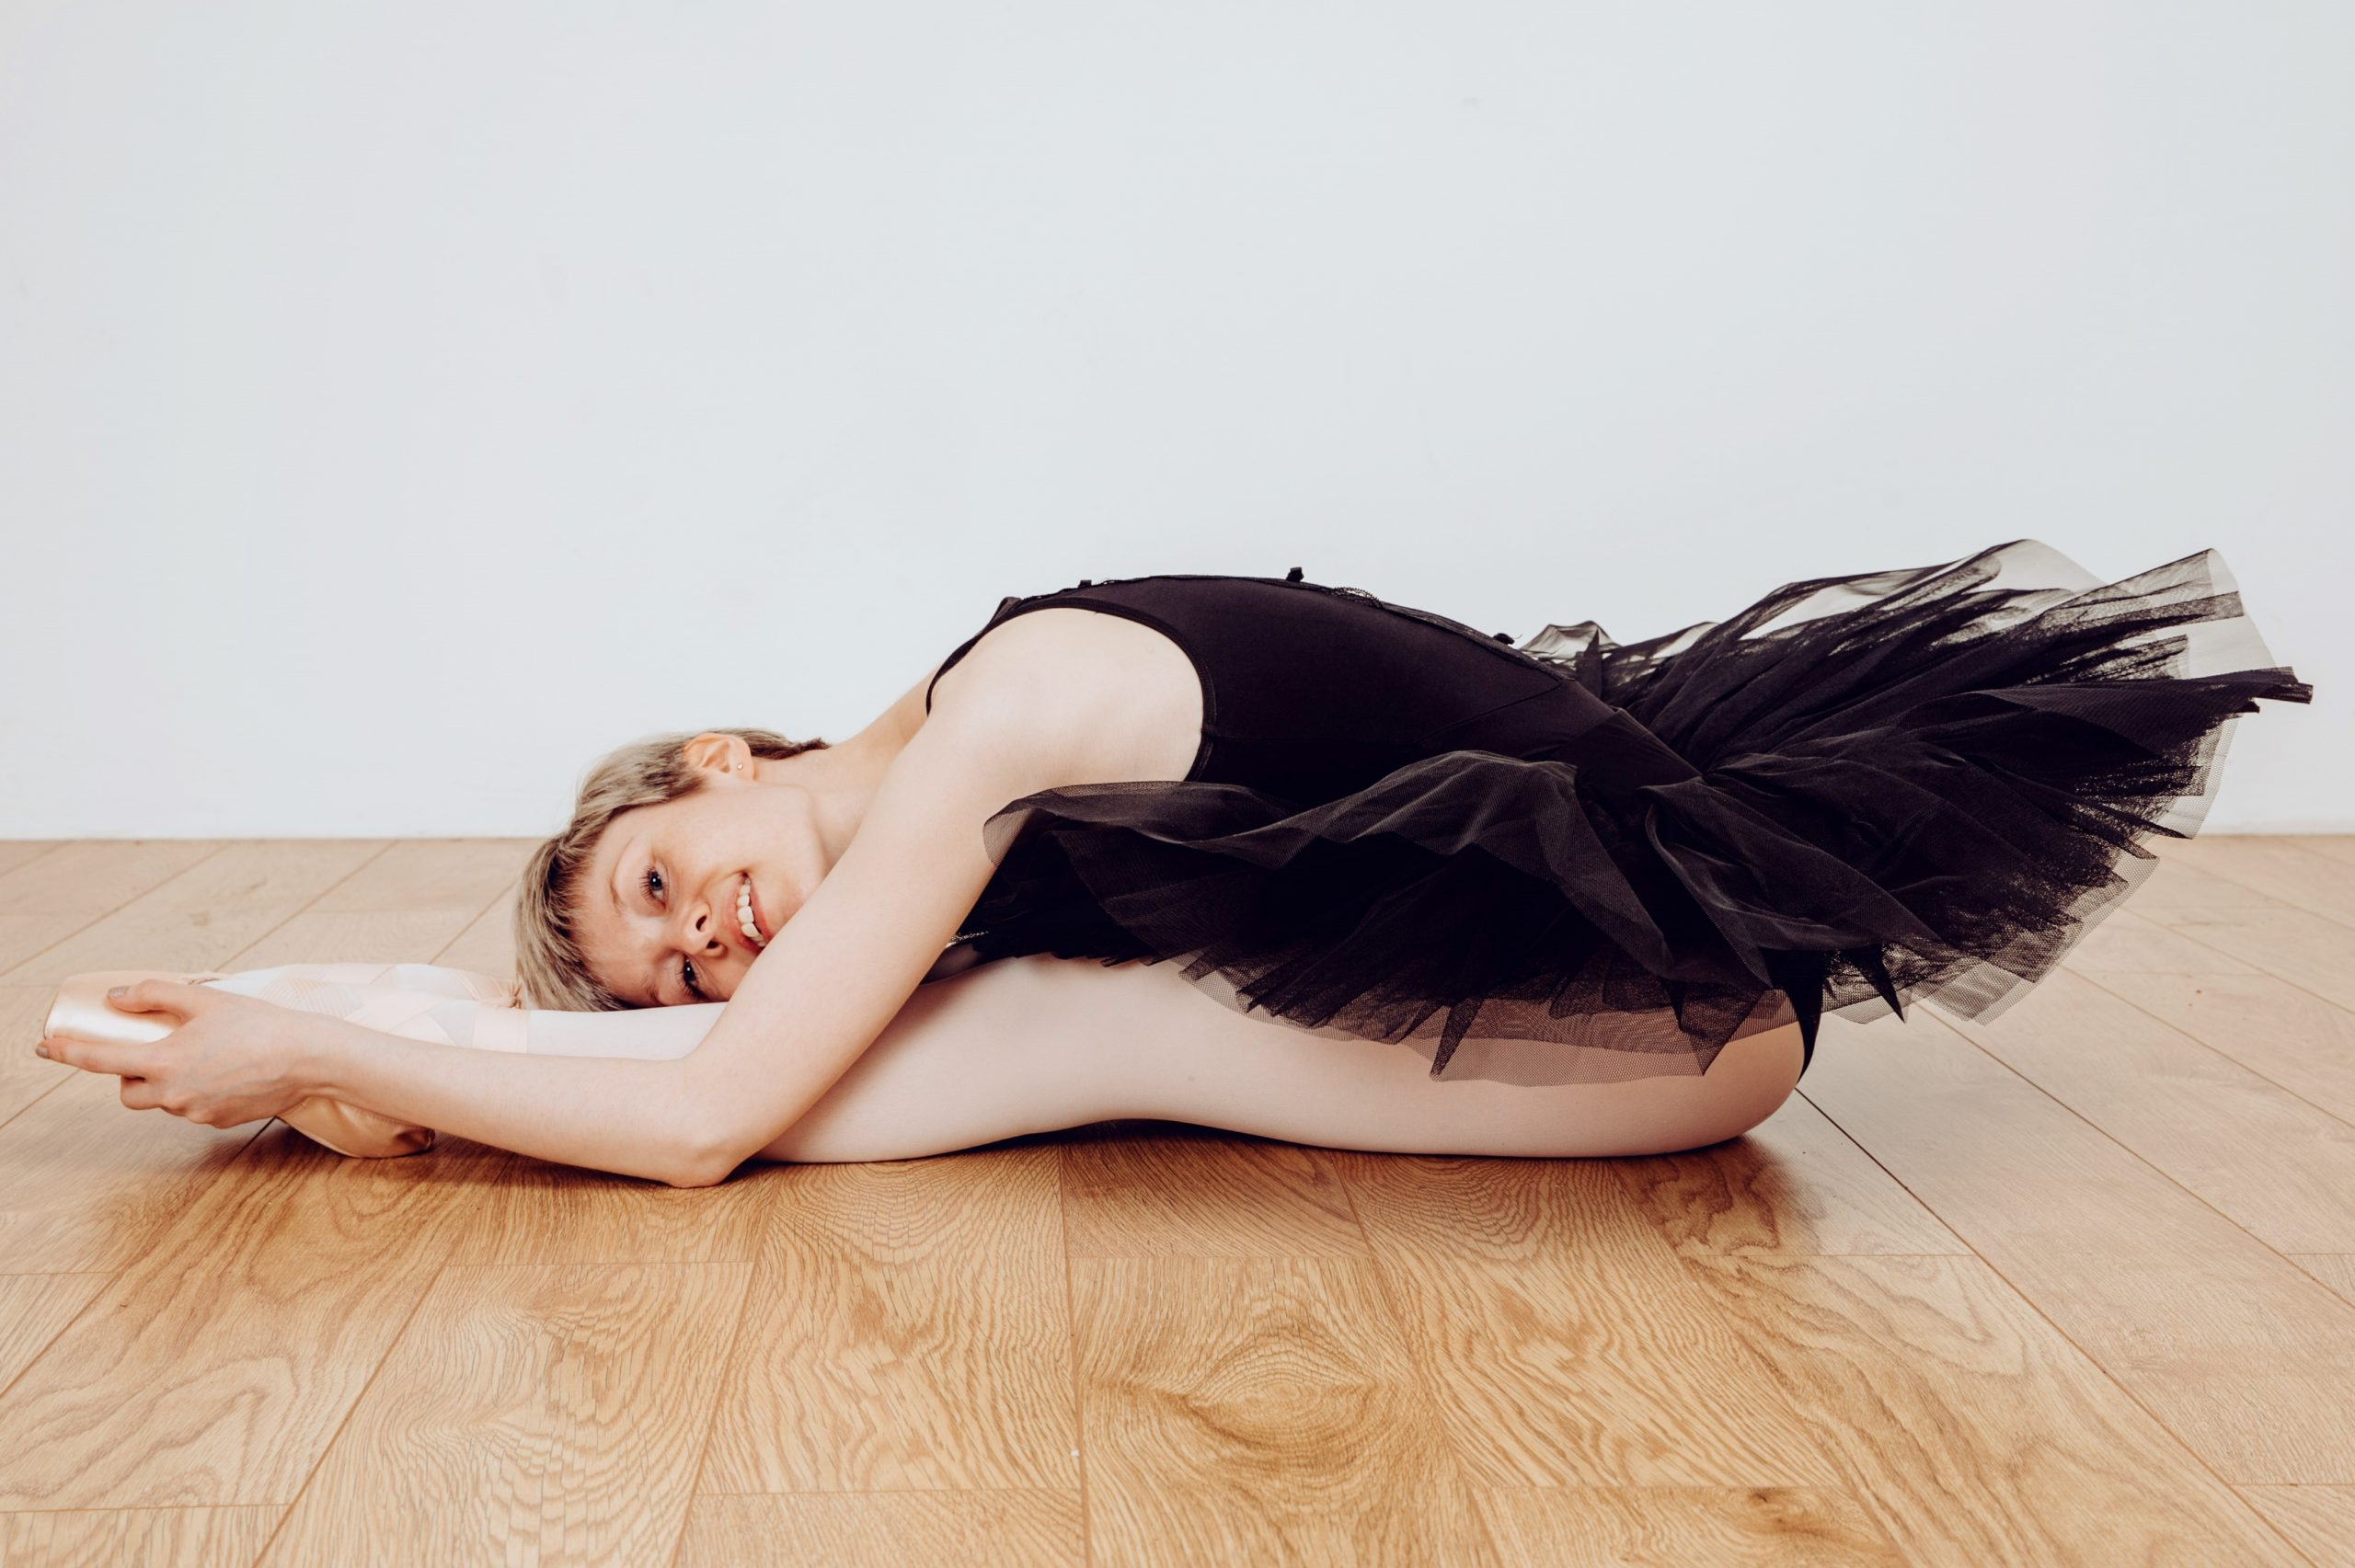 Georgina Butler photographed sitting on a wooden floor. She is effortlessly leaning her torso forward to rest on her legs, which are stretched out in front of her. She is wearing a black leotard, black tutu, pink ballet tights and pink ballet shoes. She is looking directly at the viewer and smiling.